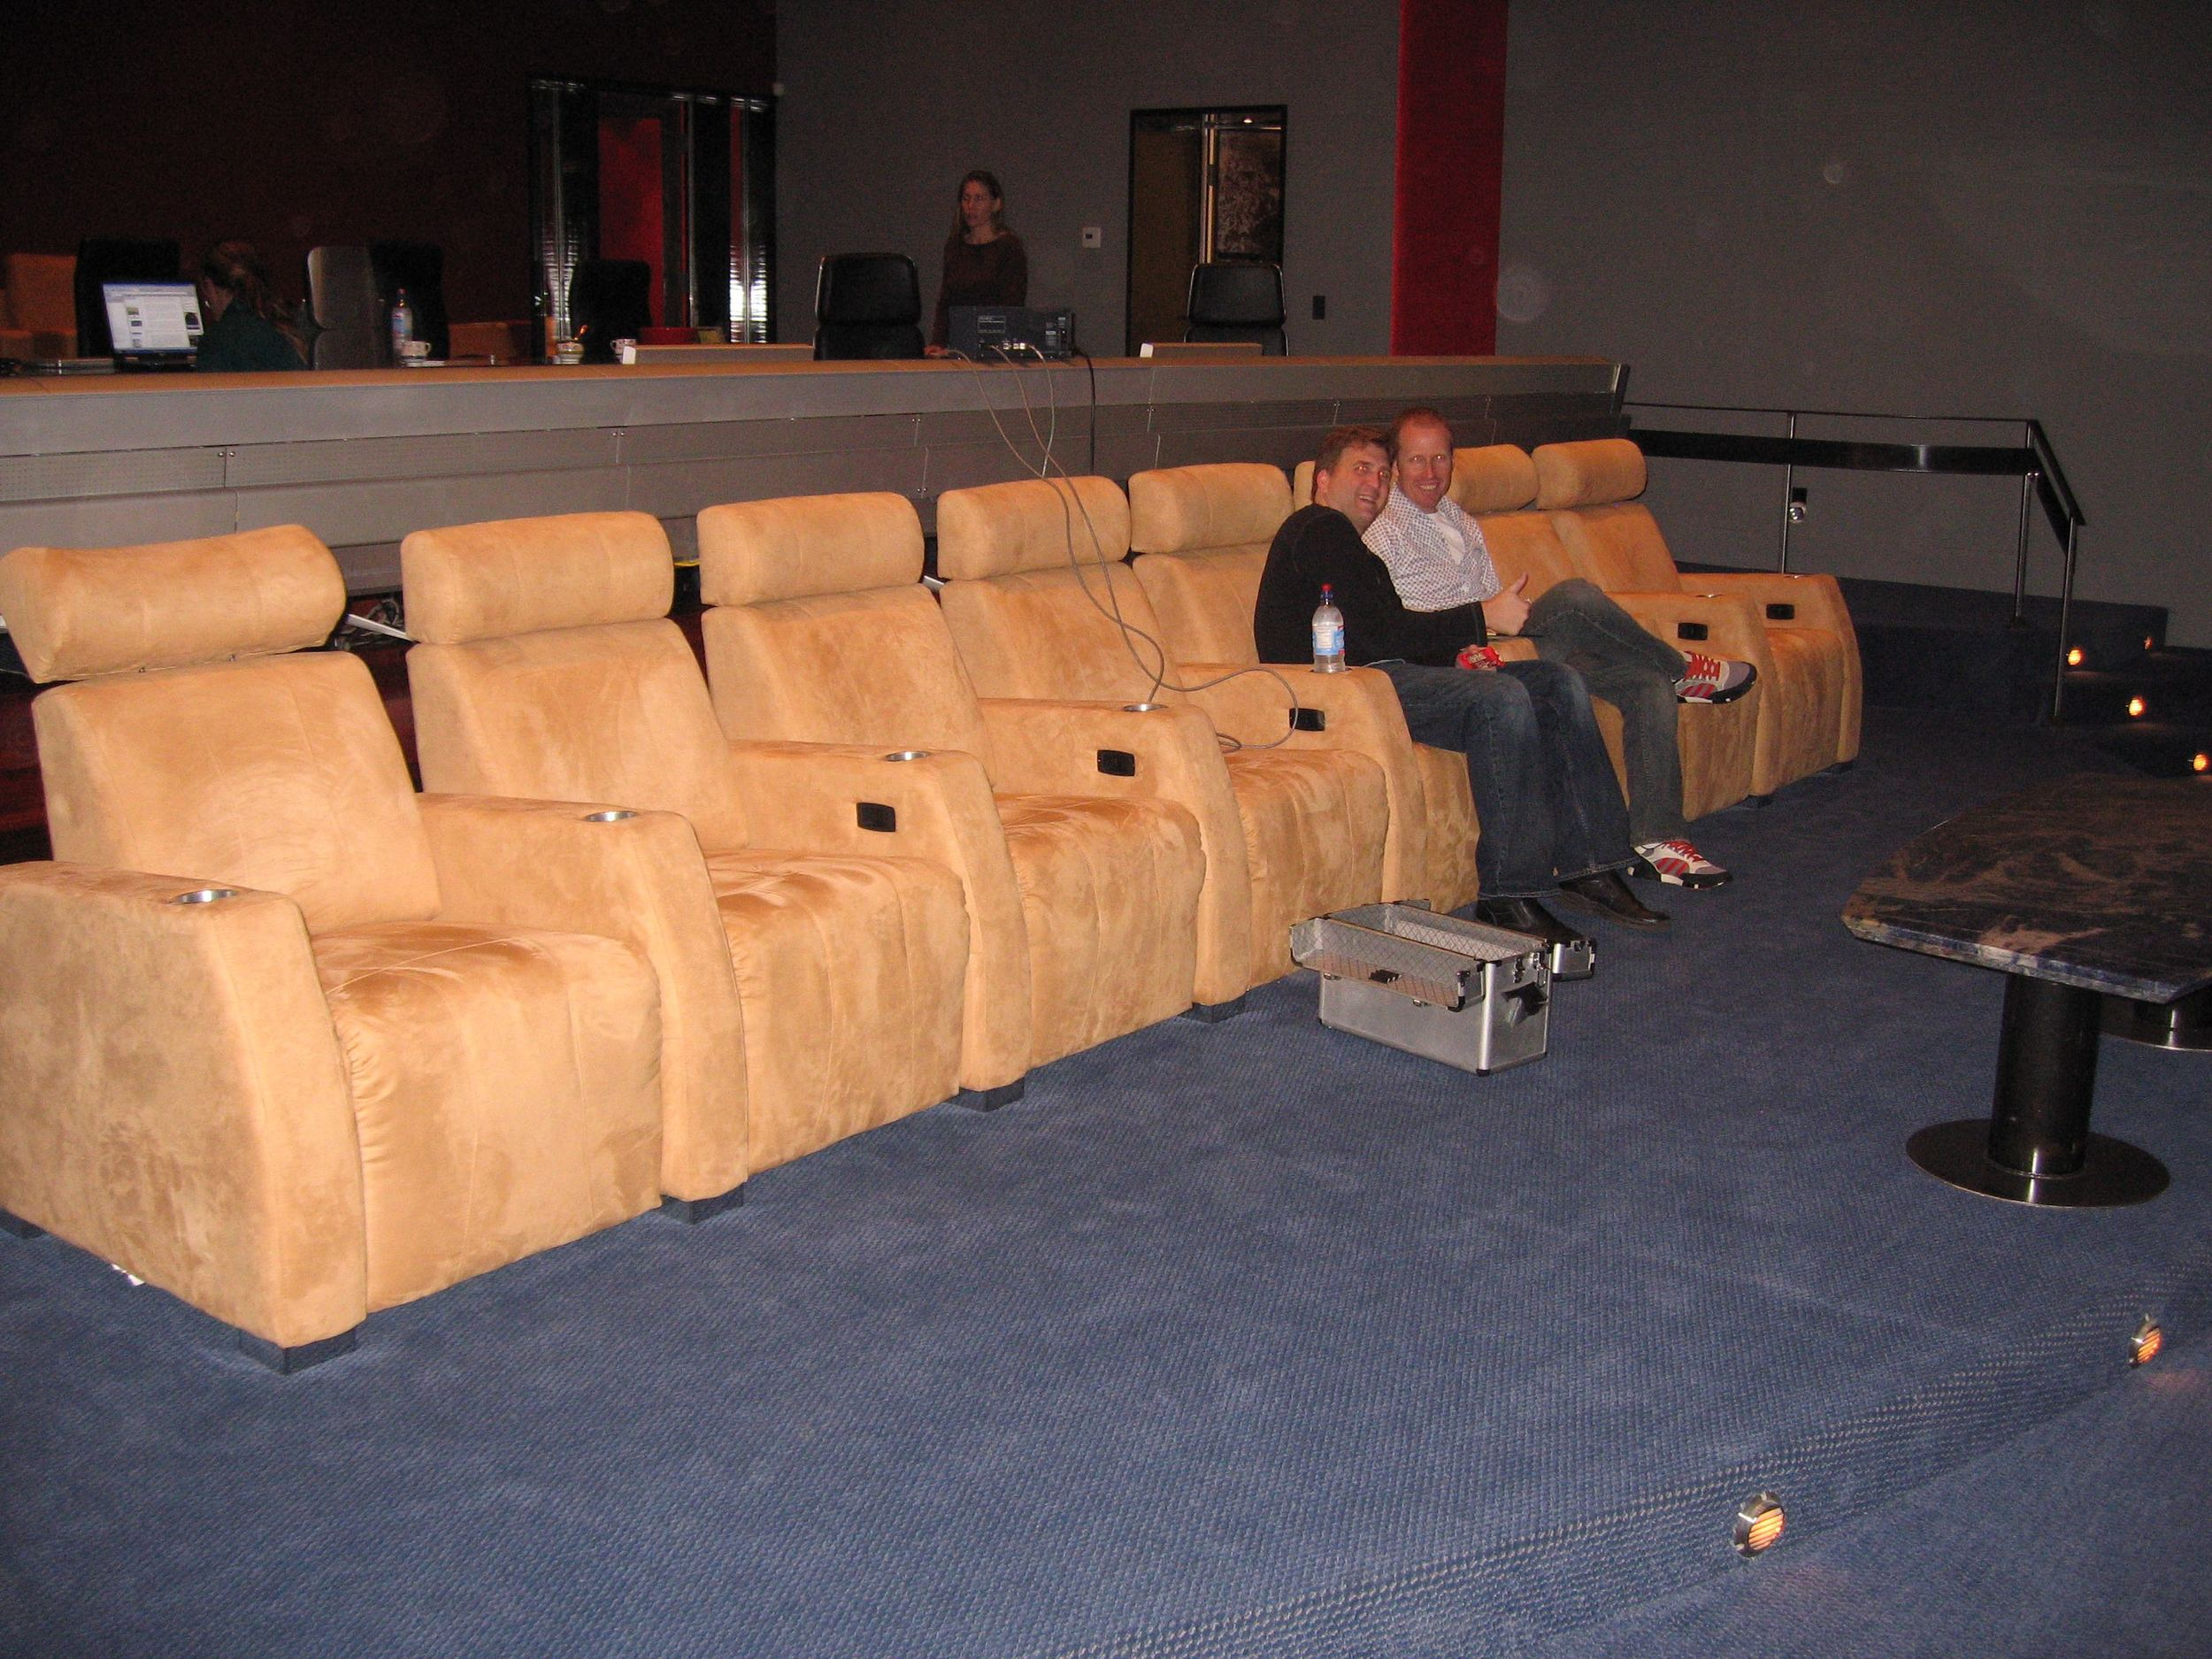 Jim Praytor (Producer) and Dan Roebuck (Paul Rocco) sit back and enjoy the mix at 424 Studios in Hollywood.